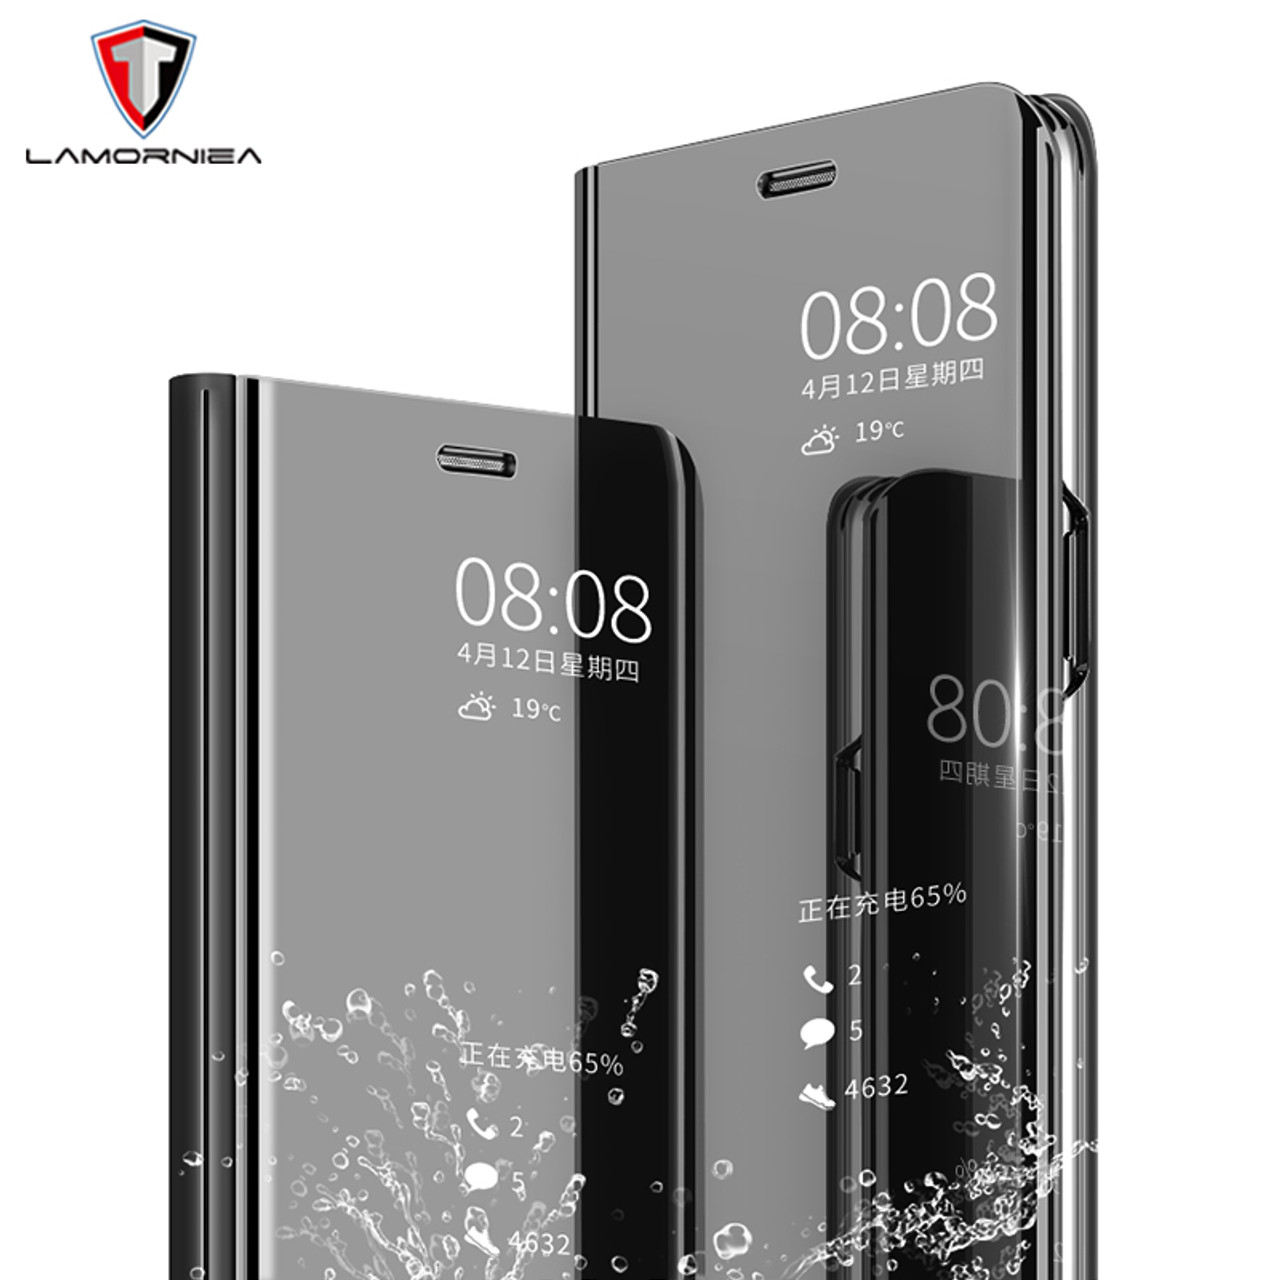 finest selection 6ac03 4cdbb Mirror Case For Xiaomi Mi Mix 2 Luxury Flip Stand Cover For RedMi 5  Plus/Note 5A /Mi 5X A1/Mi Note 3/RedMi 4X/RedMi Note 4X 5 5C